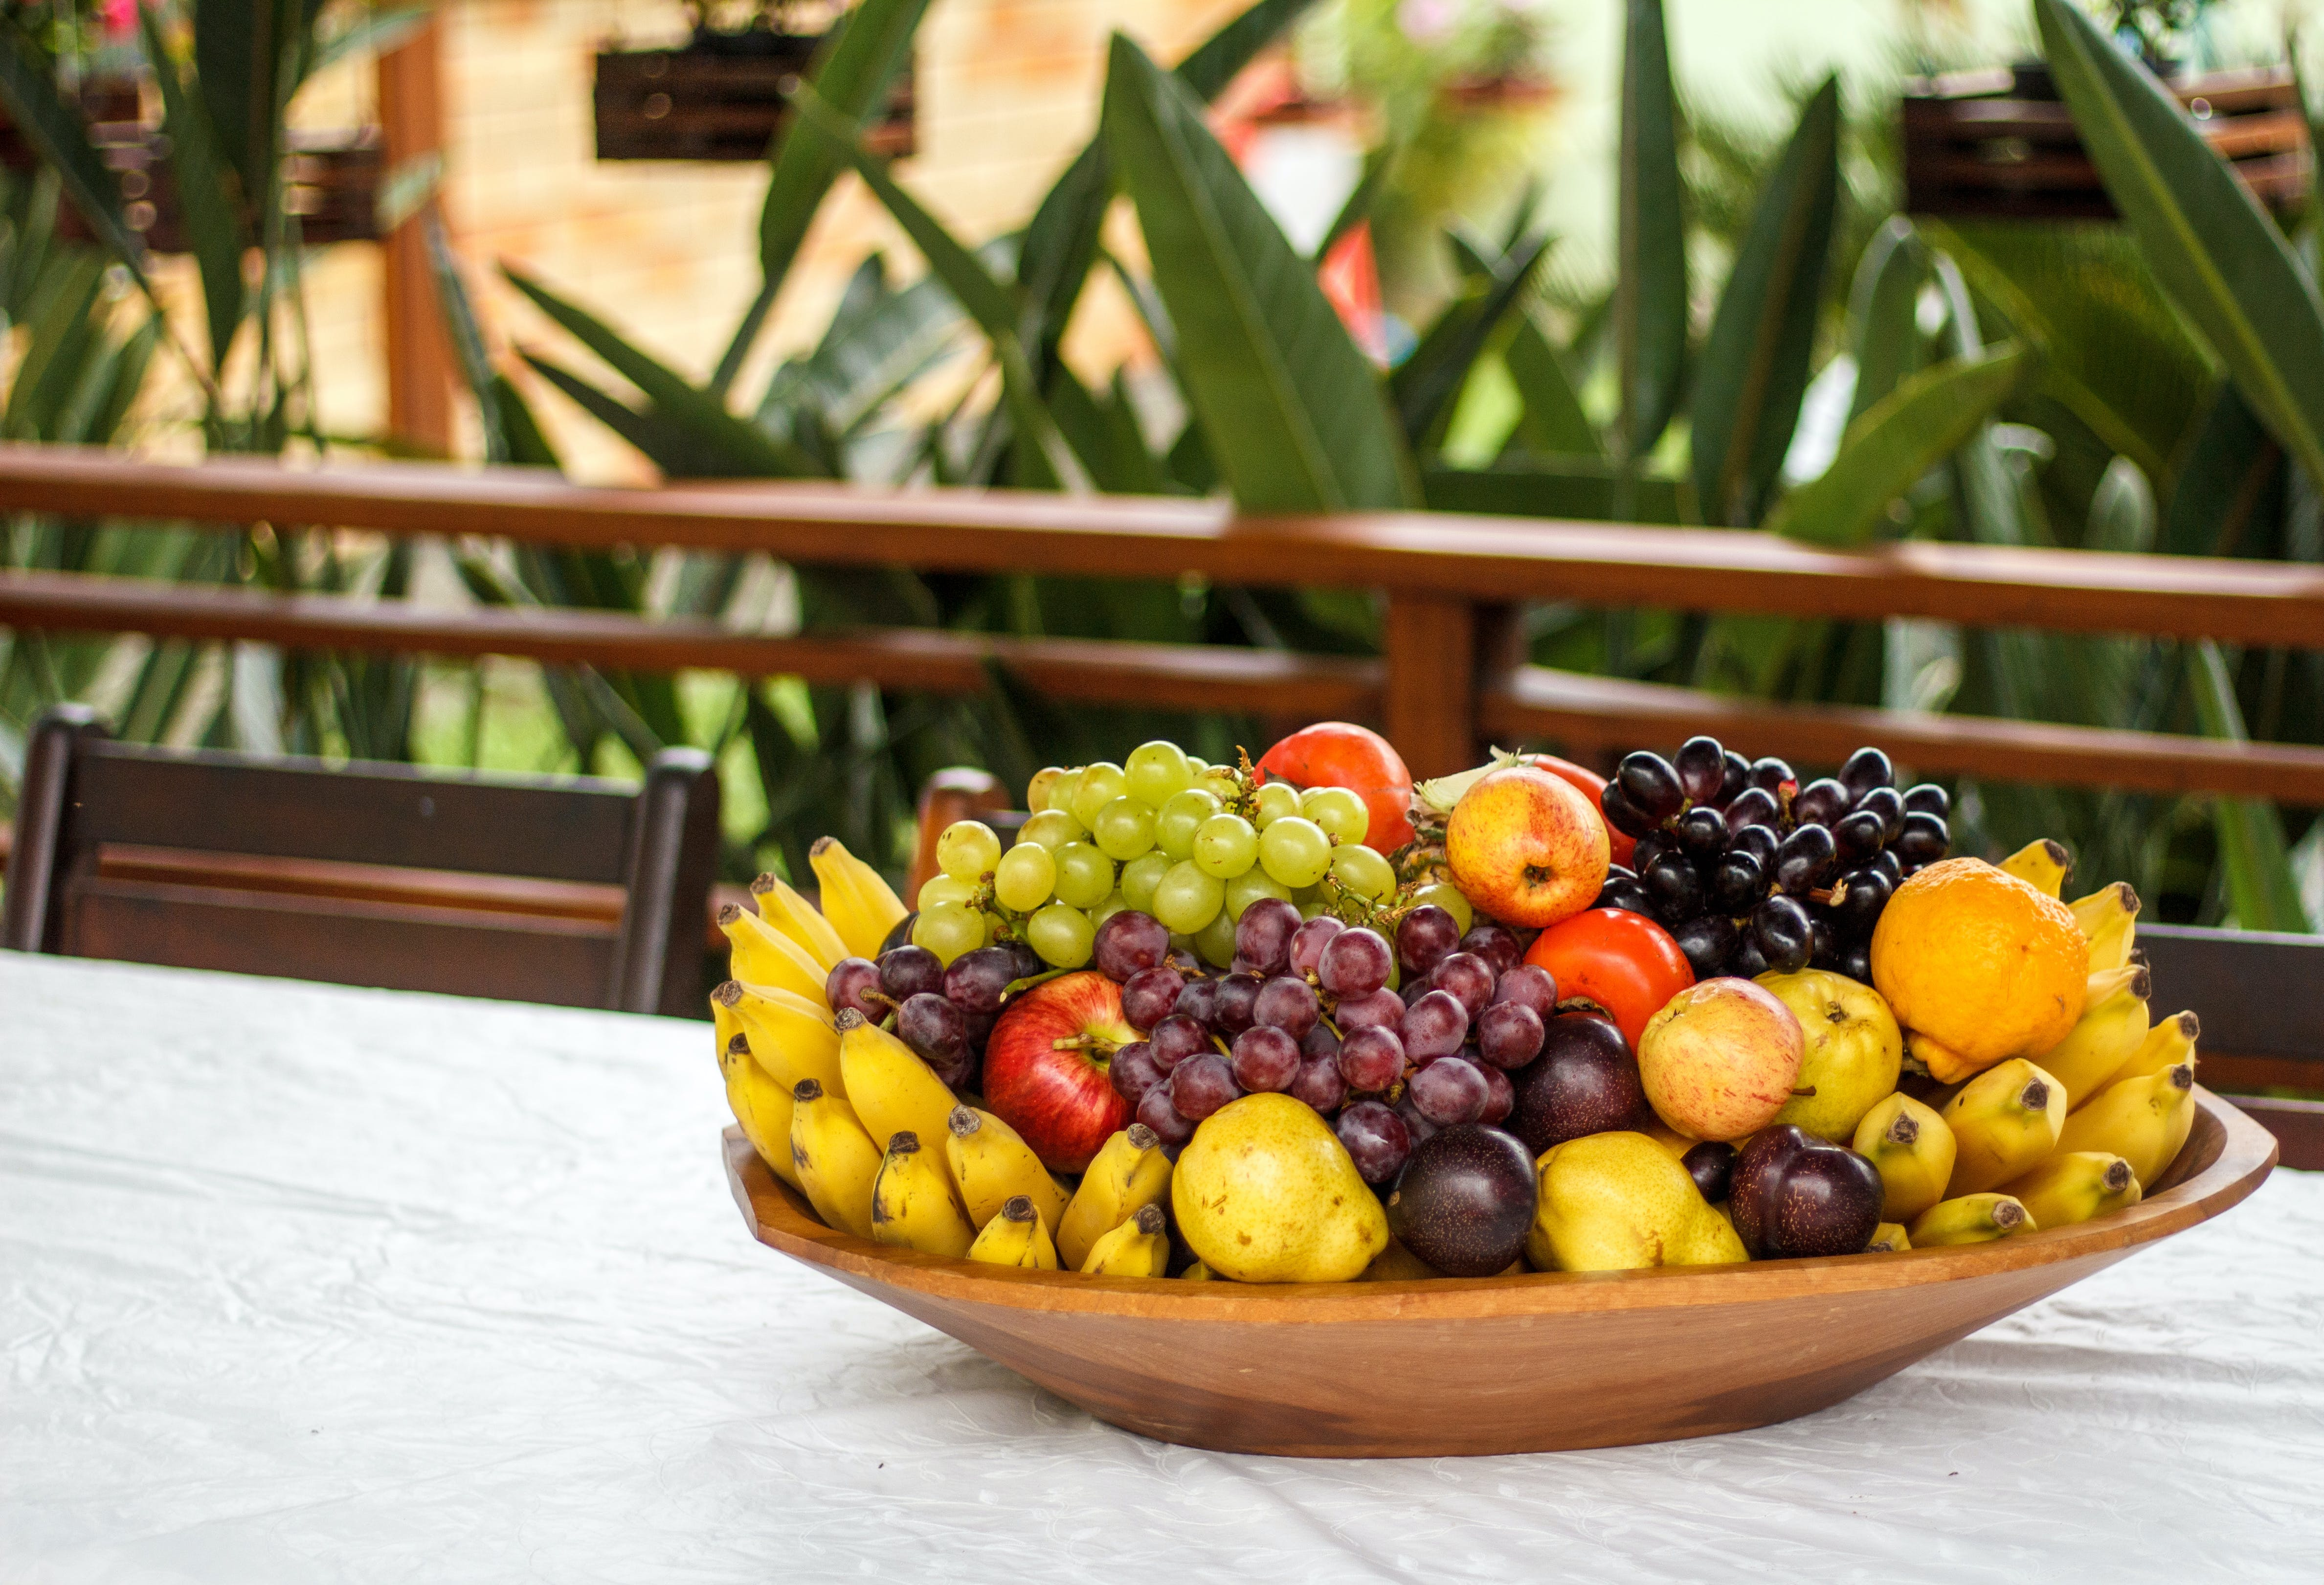 Variety Fruits on Brown Tray